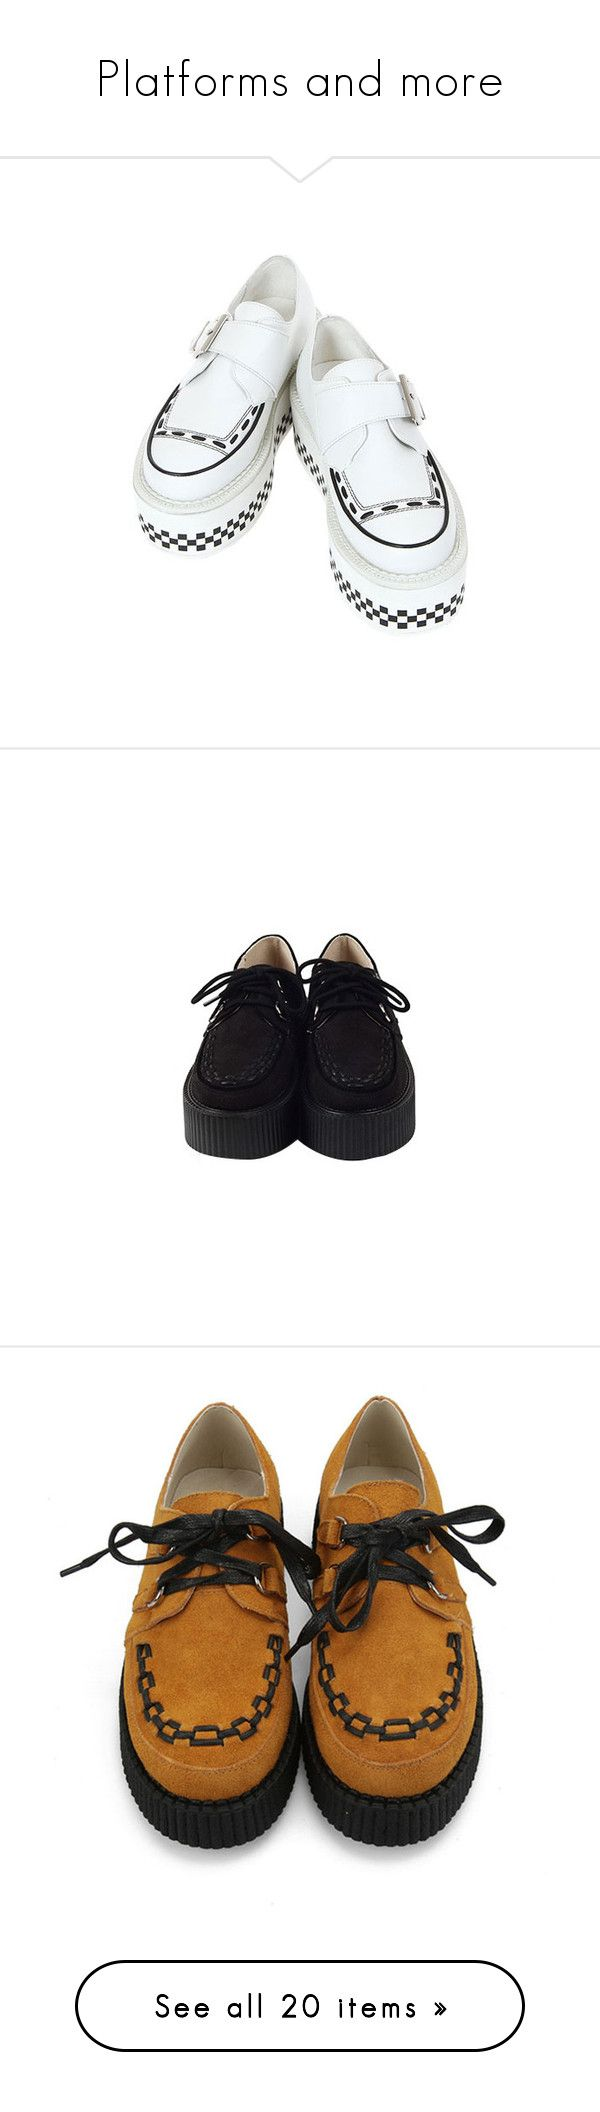 """""""Platforms and more"""" by m-gy ❤ liked on Polyvore featuring shoes, sneakers, creepers, shoes - sneakers, black leather trainers, lace up sneakers, leather sneakers, black lace up shoes, leather shoes and footwear"""